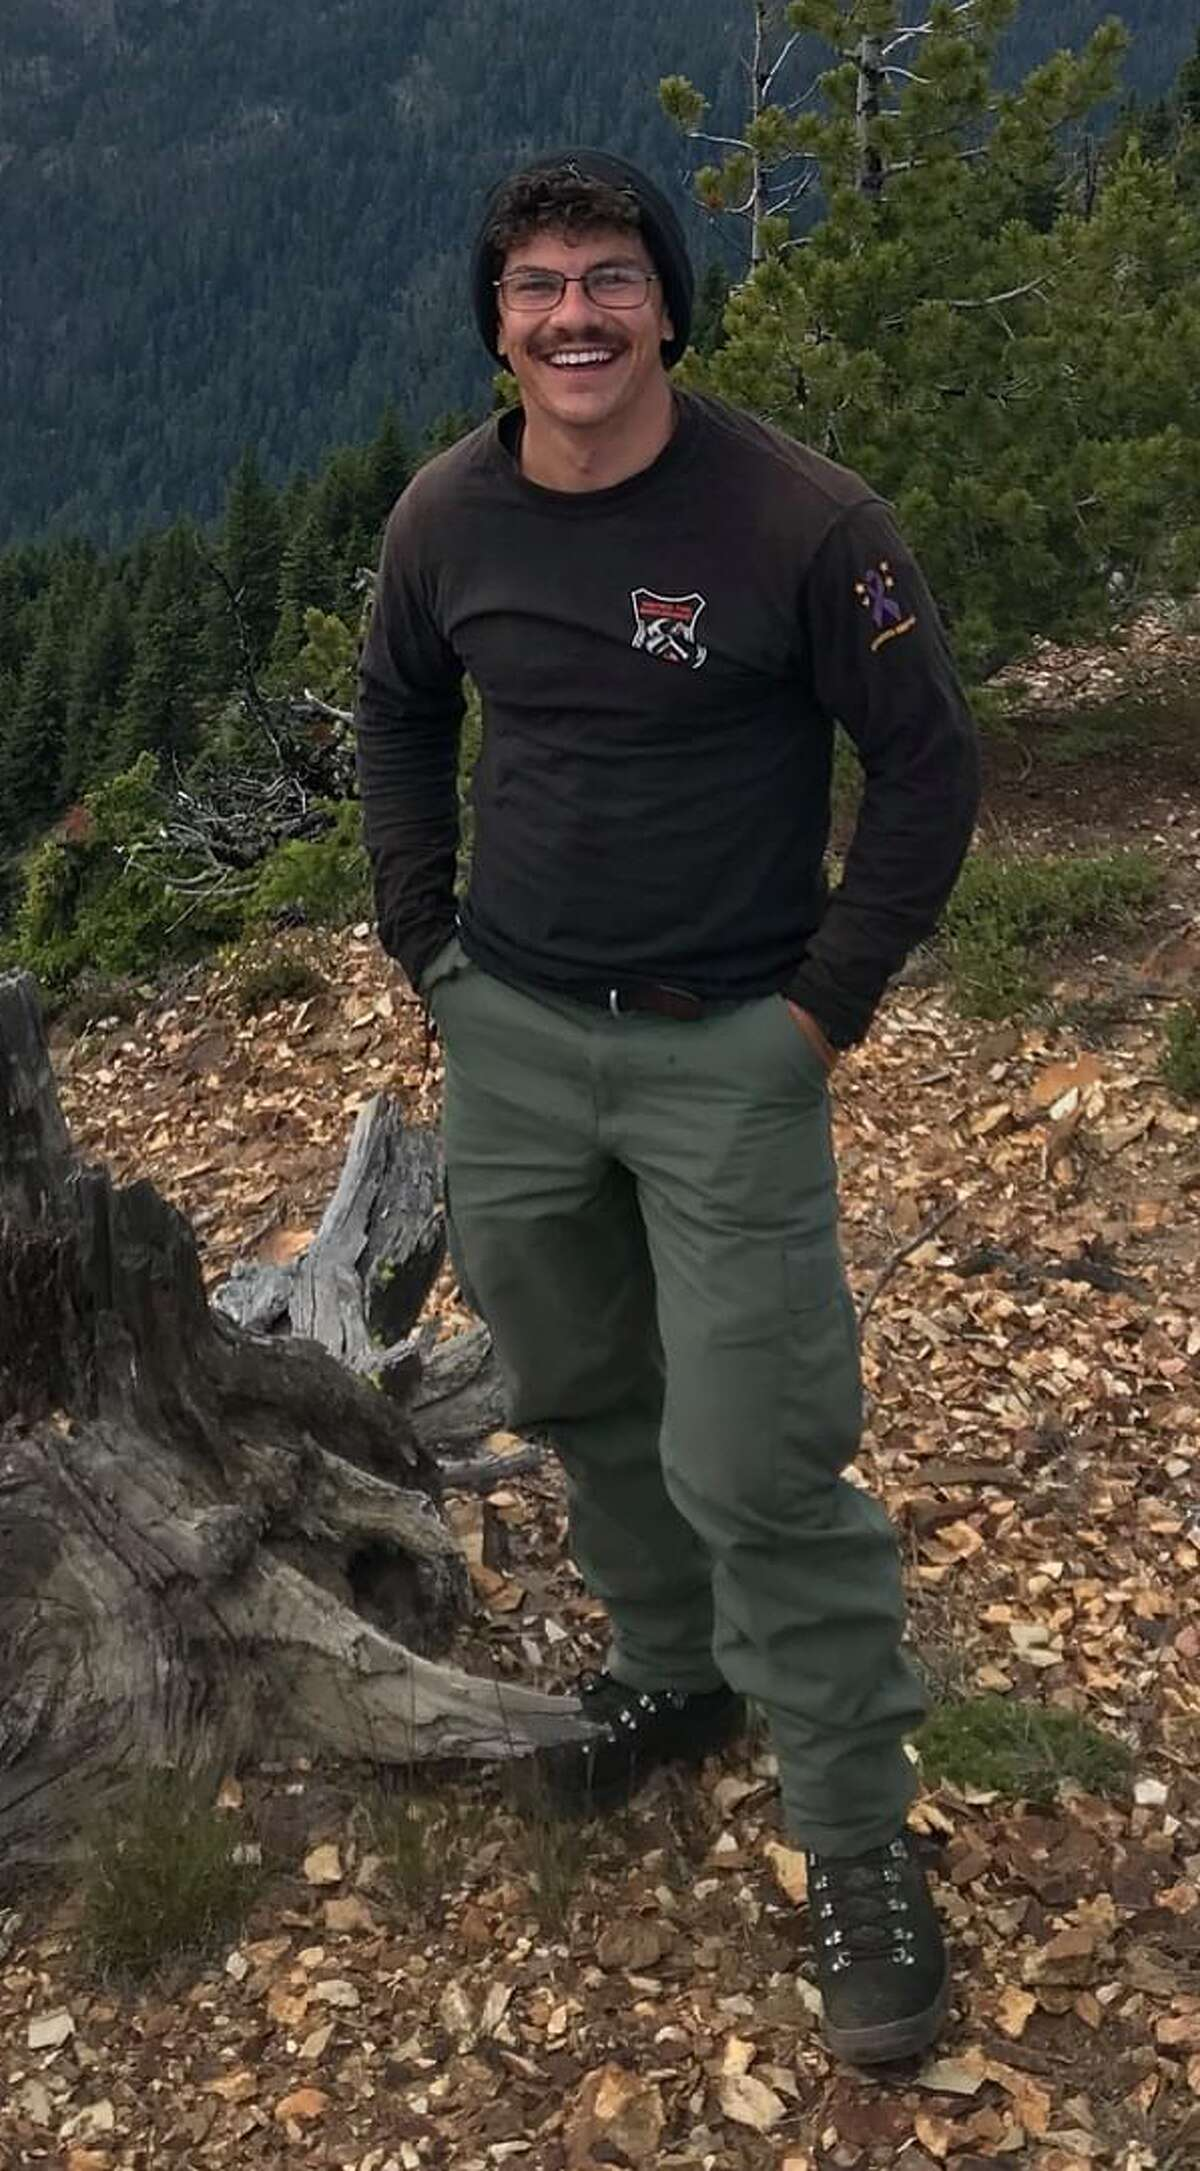 The National Parks Service is searching for Steven Grunwald, pictured. He was hiking and backpacking from Glacier Gorge Trailhead in the park at the end of August.